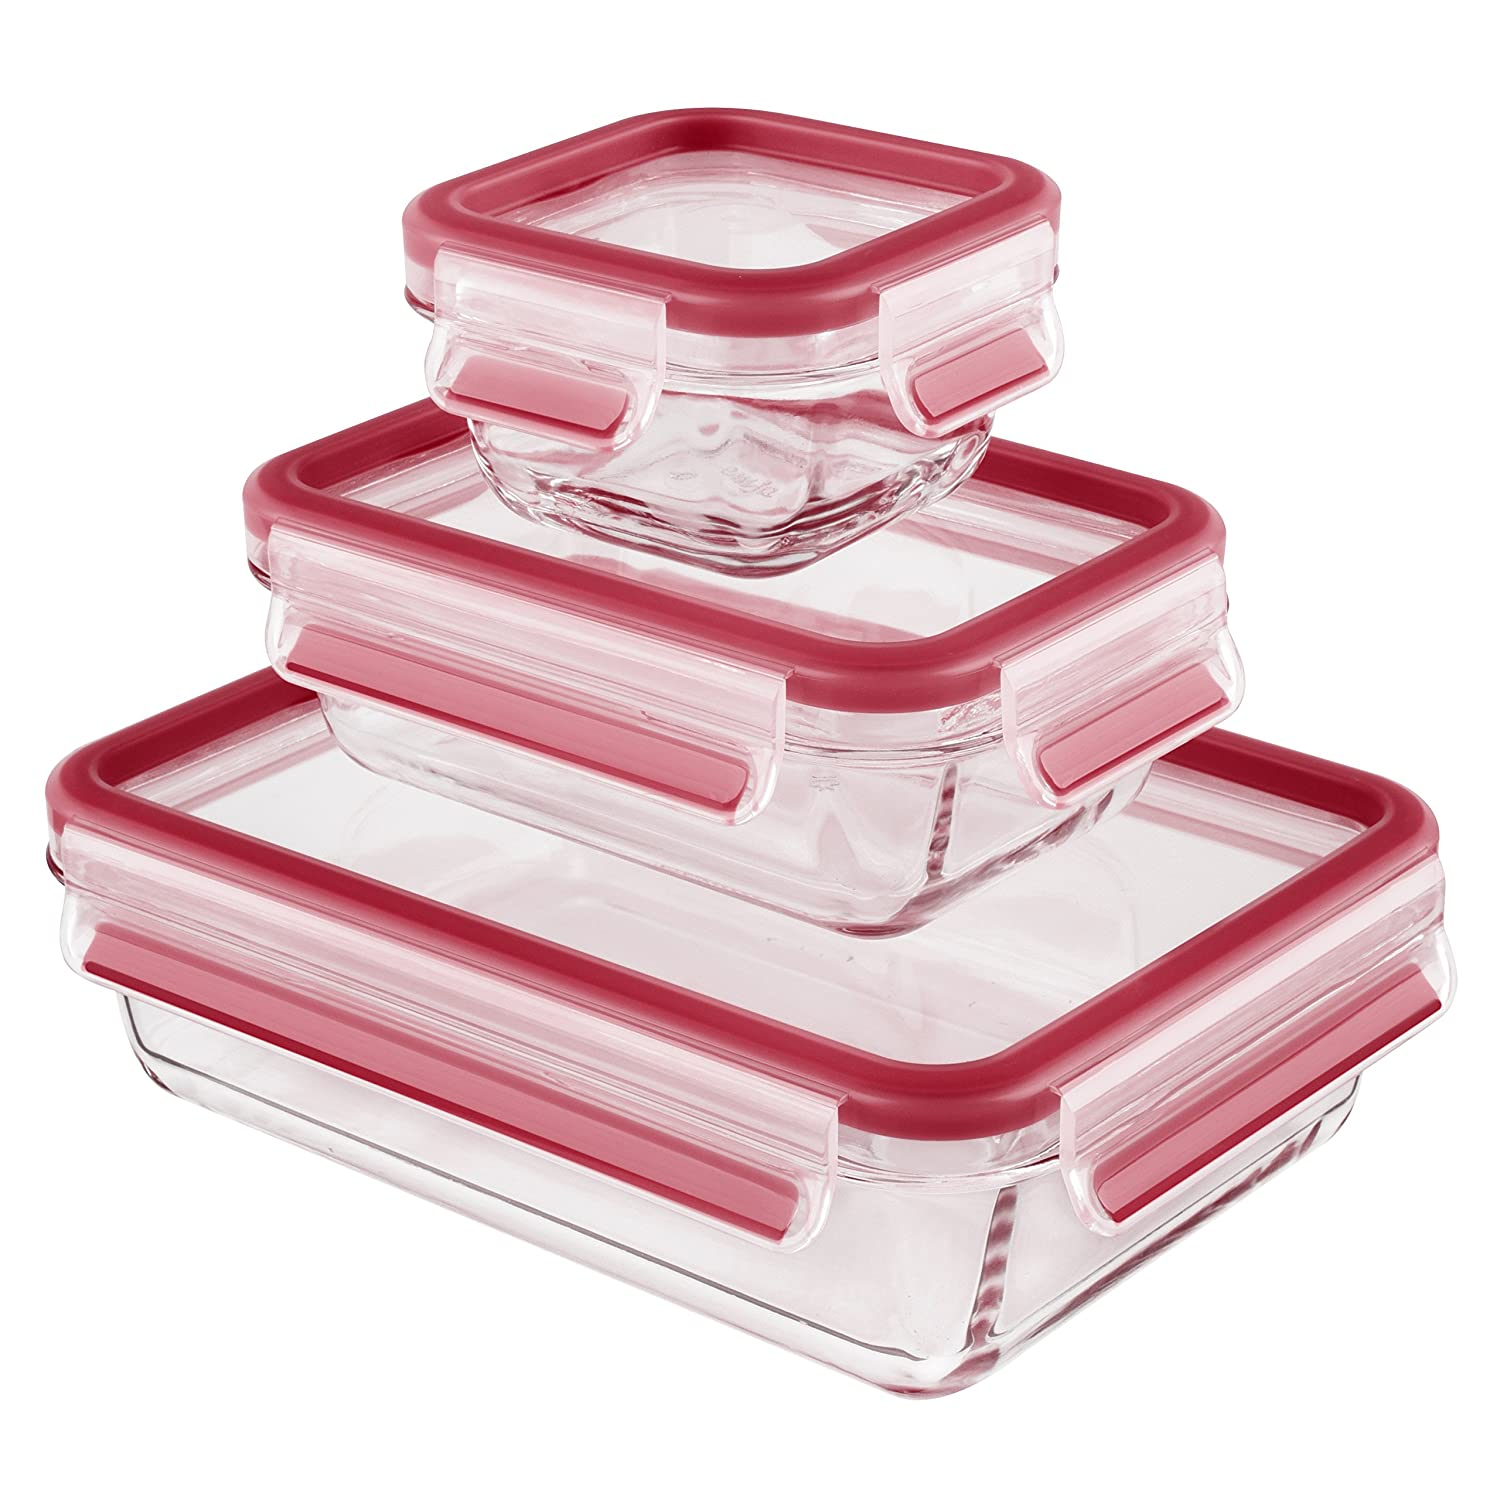 Emsa Clip & Close set of 3 Glass Food Containers with Lids